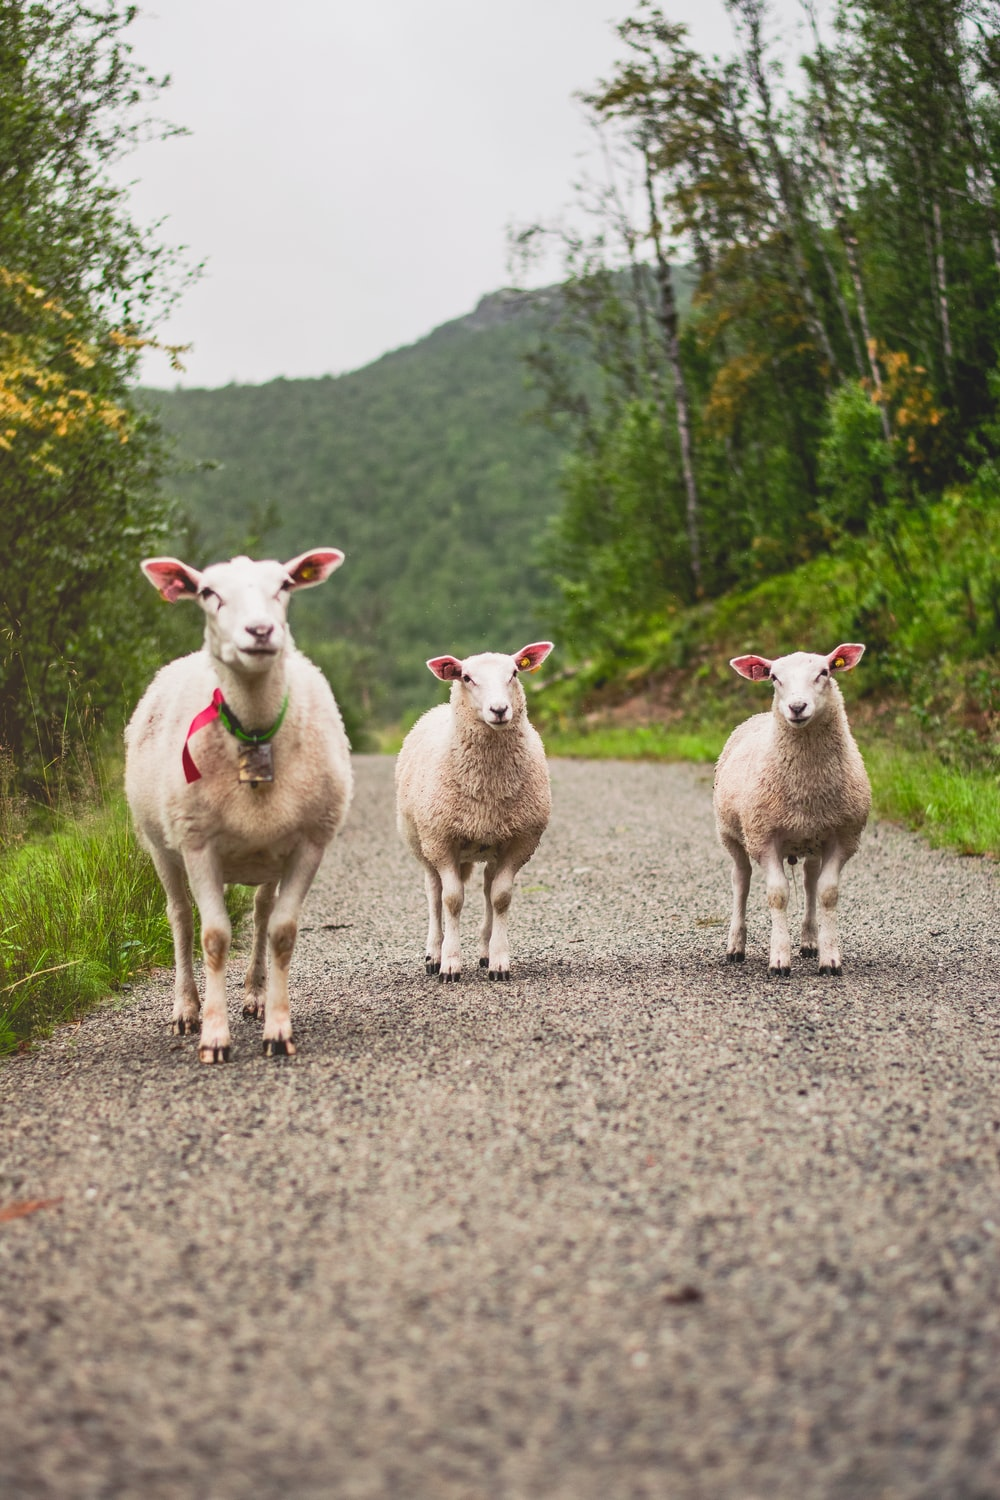 three white goats on dirt road during day